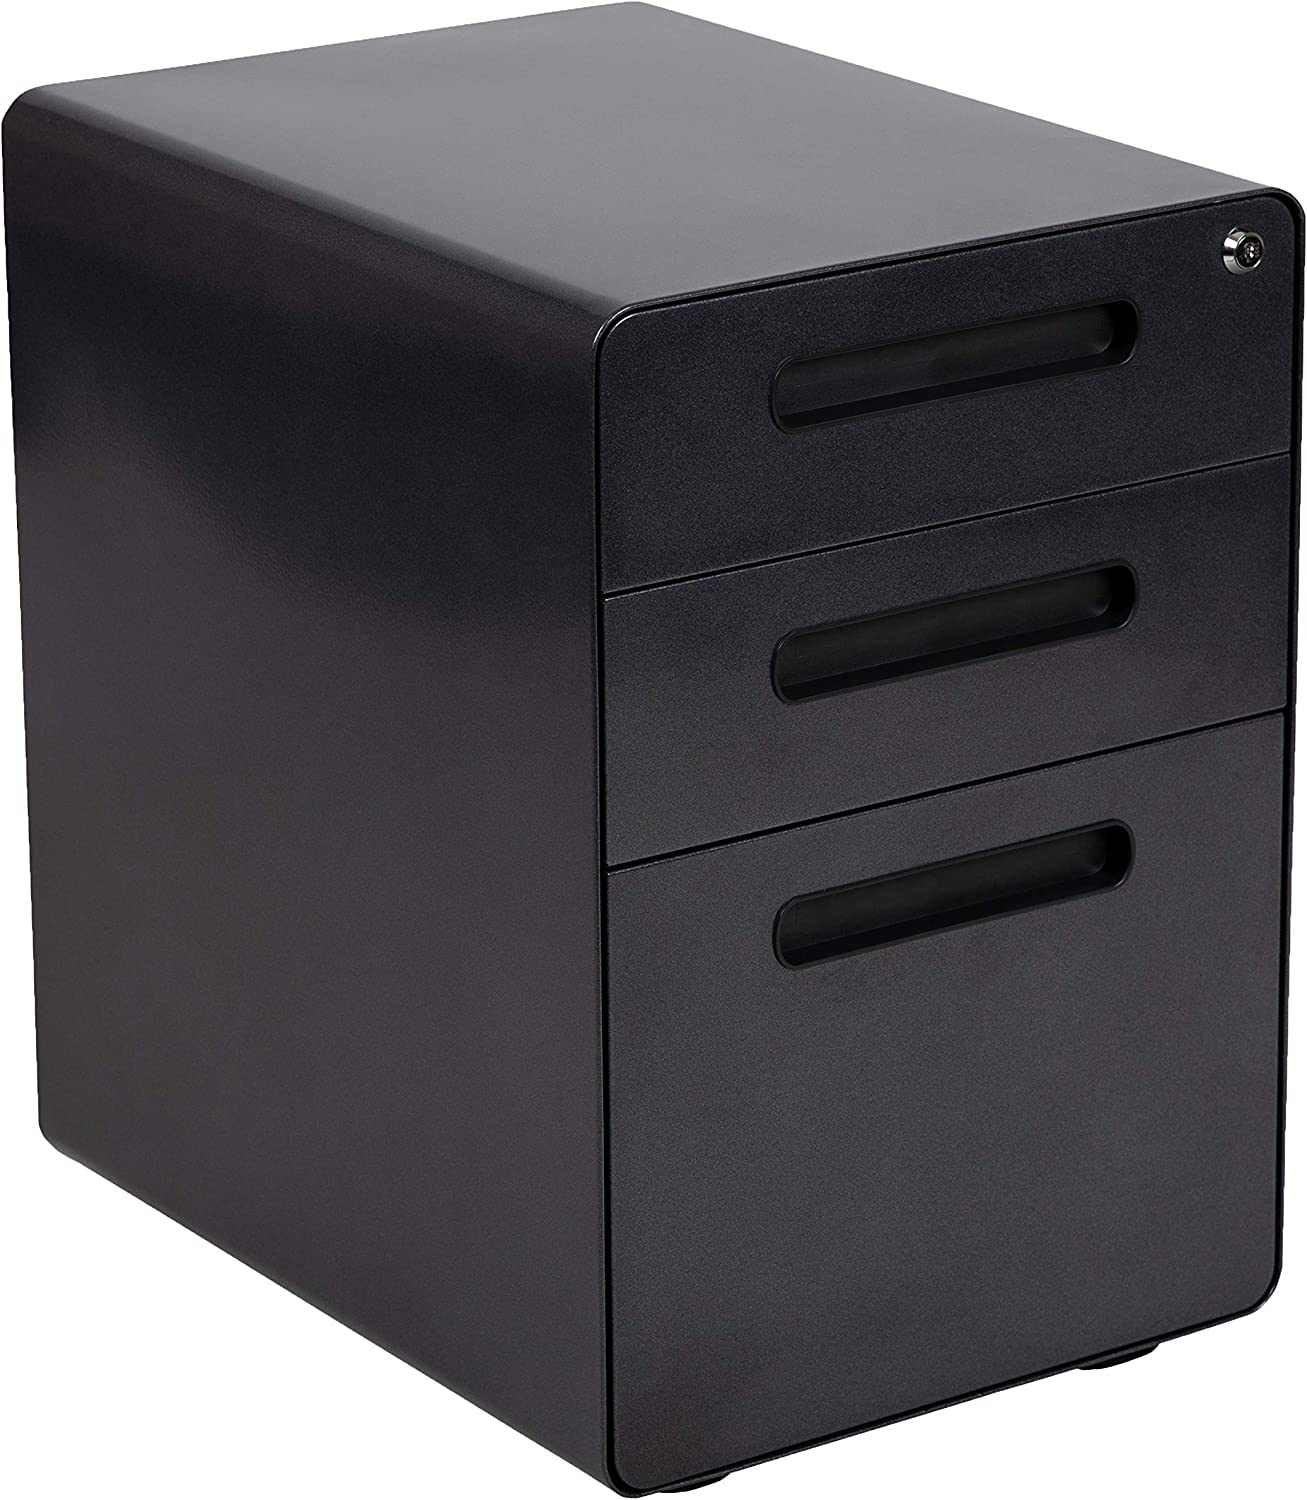 Flash Furniture Ergonomic 3-Drawer Mobile Locking Filing Cabinet with Anti-Tilt Mechanism and Hanging Drawer for Legal & Letter Files, Black